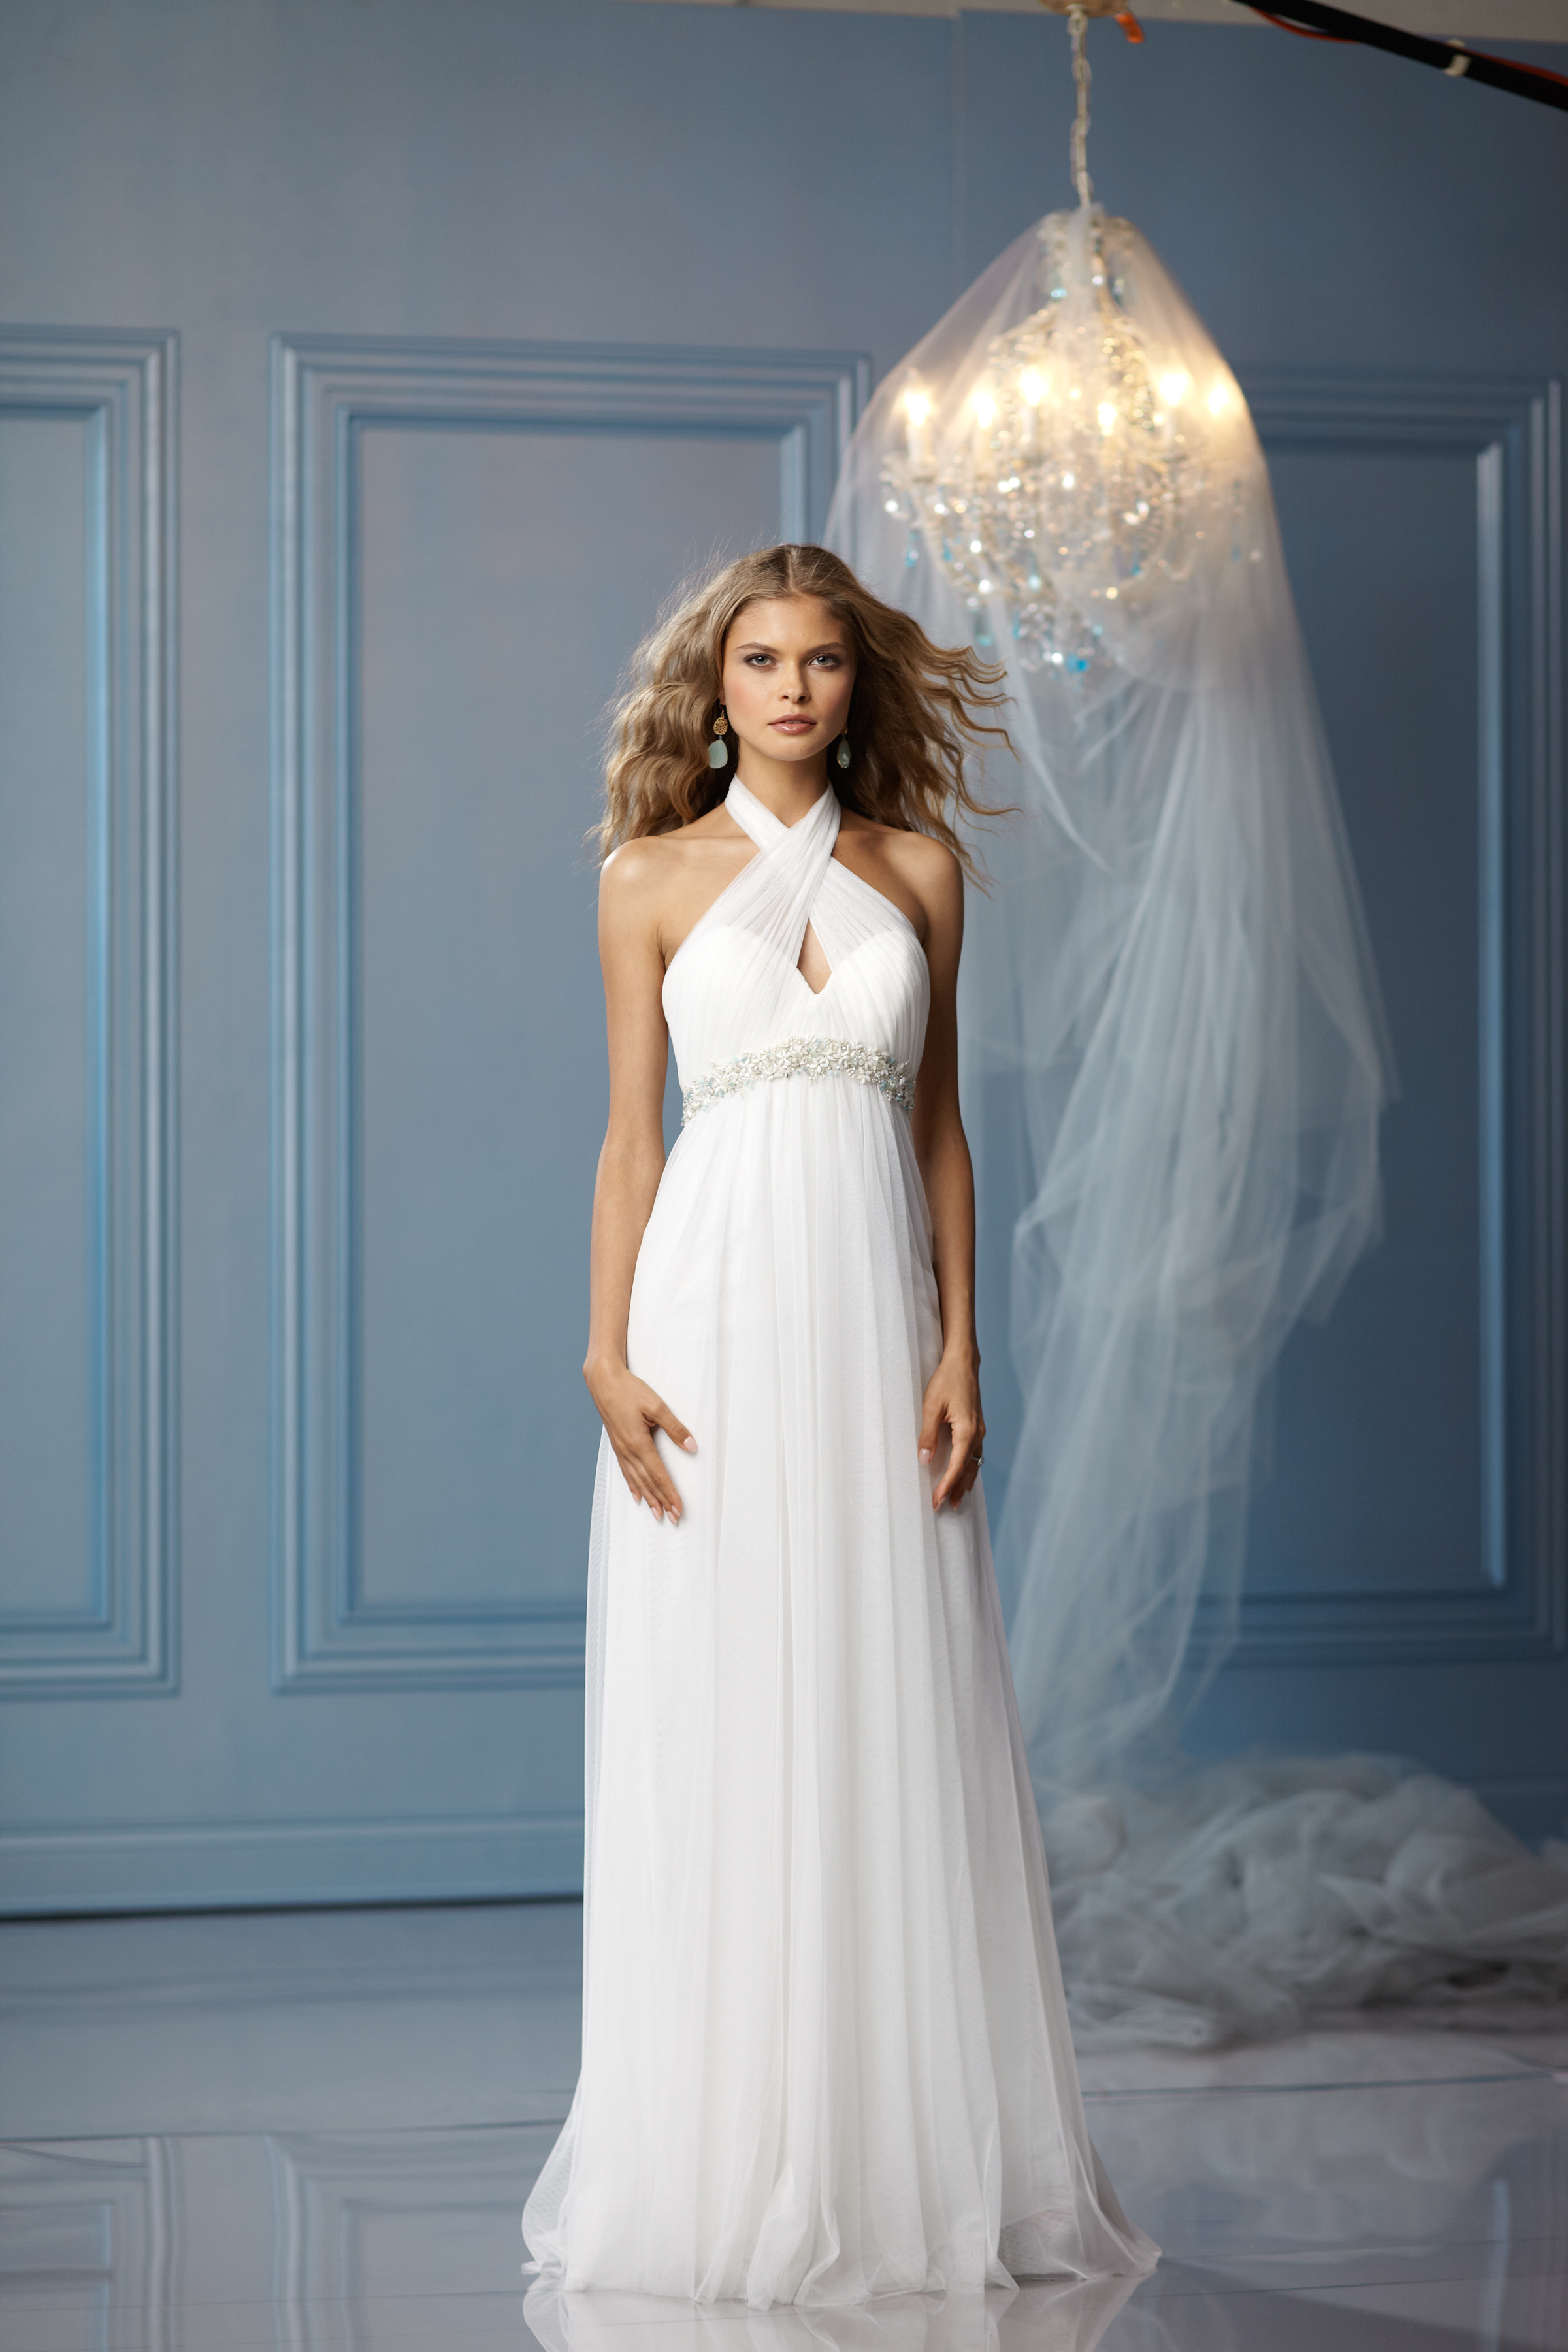 Sweetheart Wedding Dresses, A-line Wedding Dresses, Romantic Wedding Dresses, Fashion, white, ivory, Spring, Summer, Winter, Classic, Romantic, Sweetheart, A-line, Floor, Wedding dress, Natural, Silk, Taffeta, Wtoo, Sleeveless, Ruching, Sash/Belt, taffeta wedding dresses, Spring Wedding Dresses, Classic Wedding Dresses, Wtoo Brides, winter wedding dresses, Silk Wedding Dresses, Summer Wedding Dresses, Floor Wedding Dresses, Sash Wedding Dresses, Belt Wedding Dresses